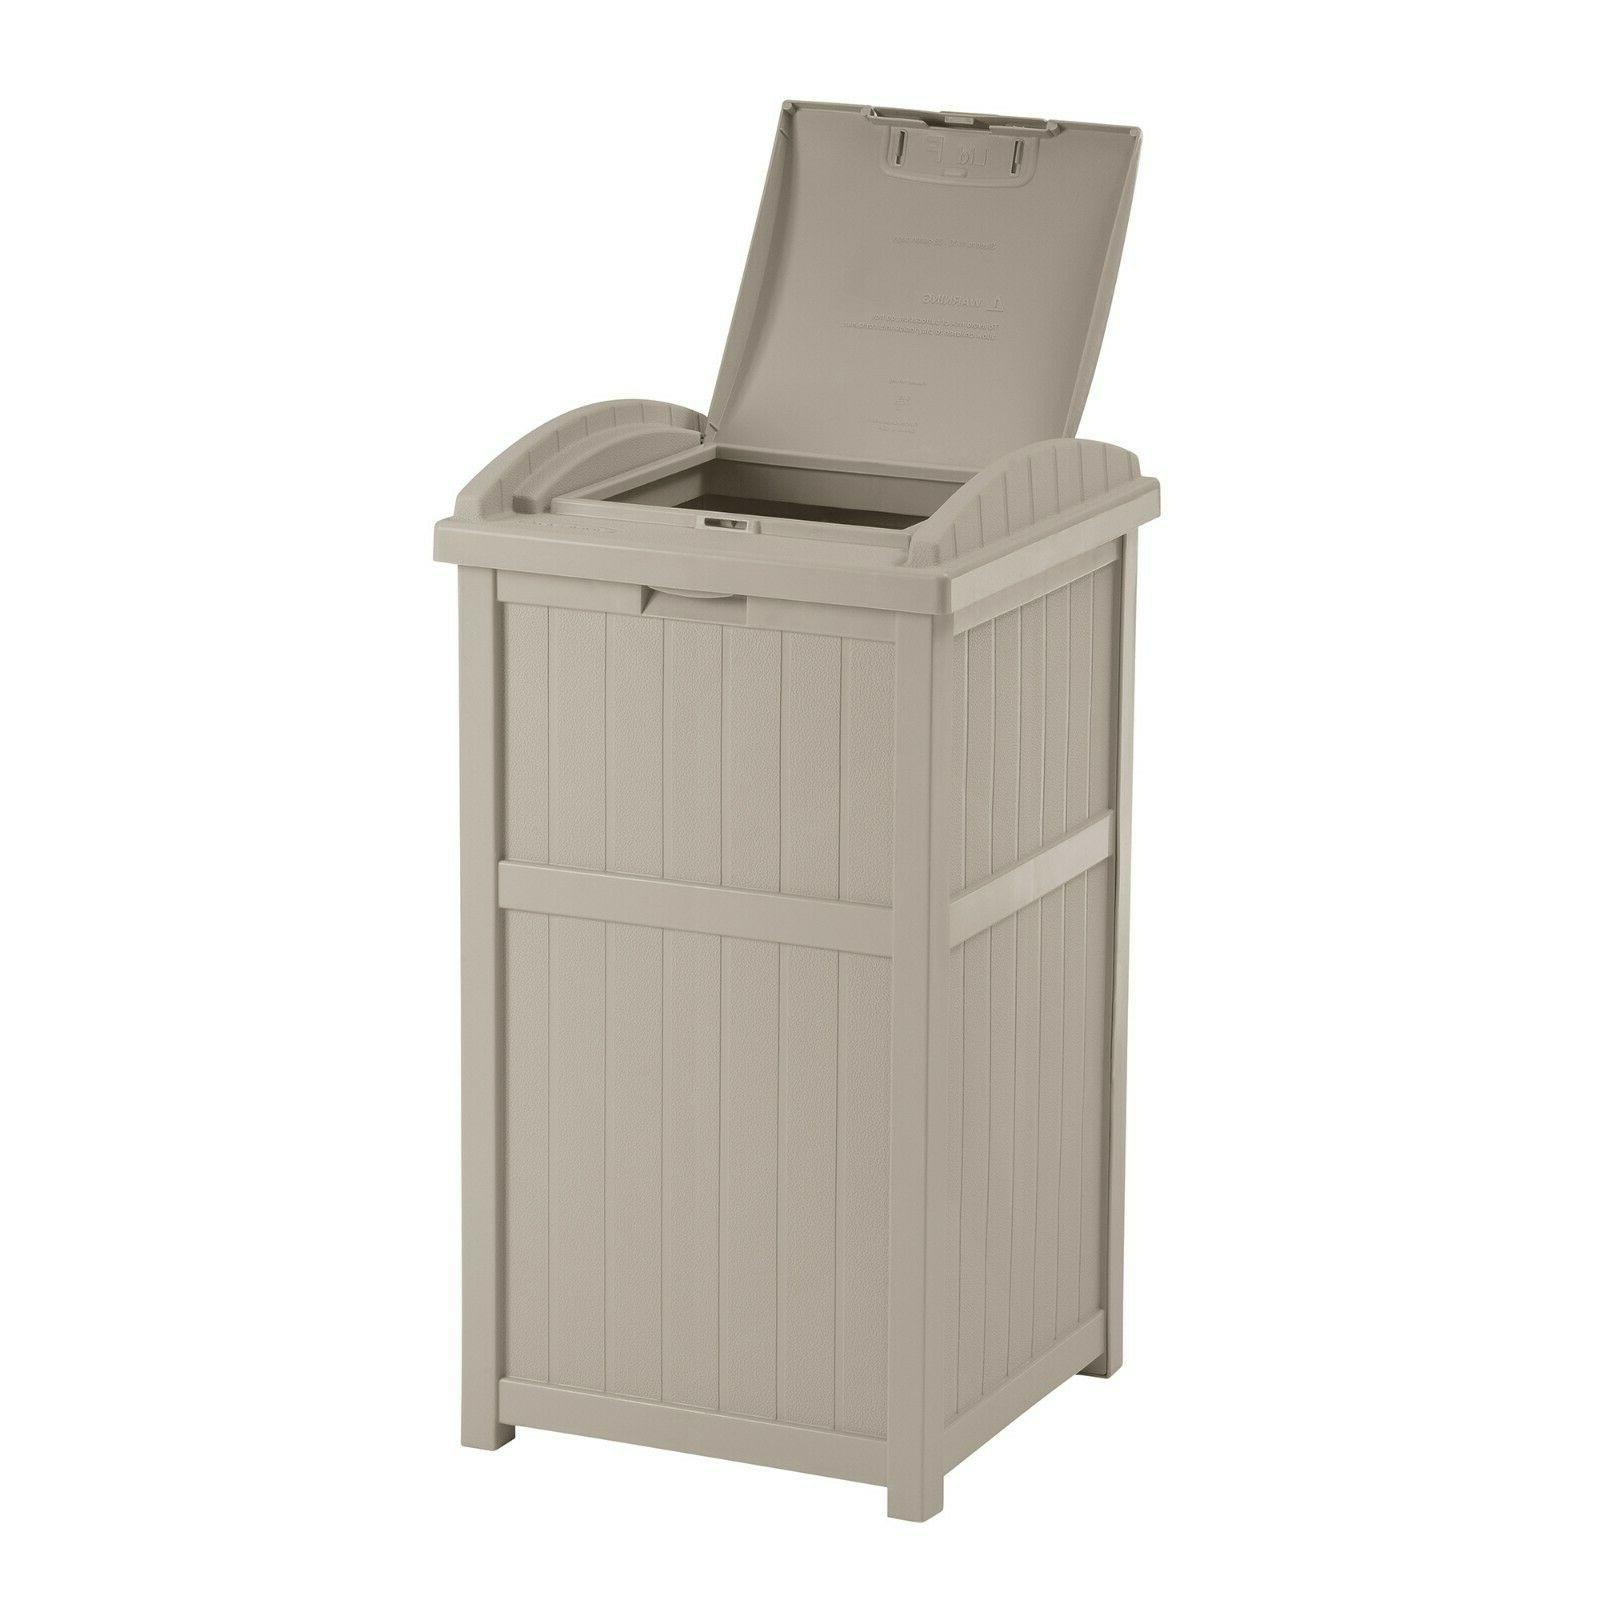 light taupe outdoor 33 gallon hideaway trash